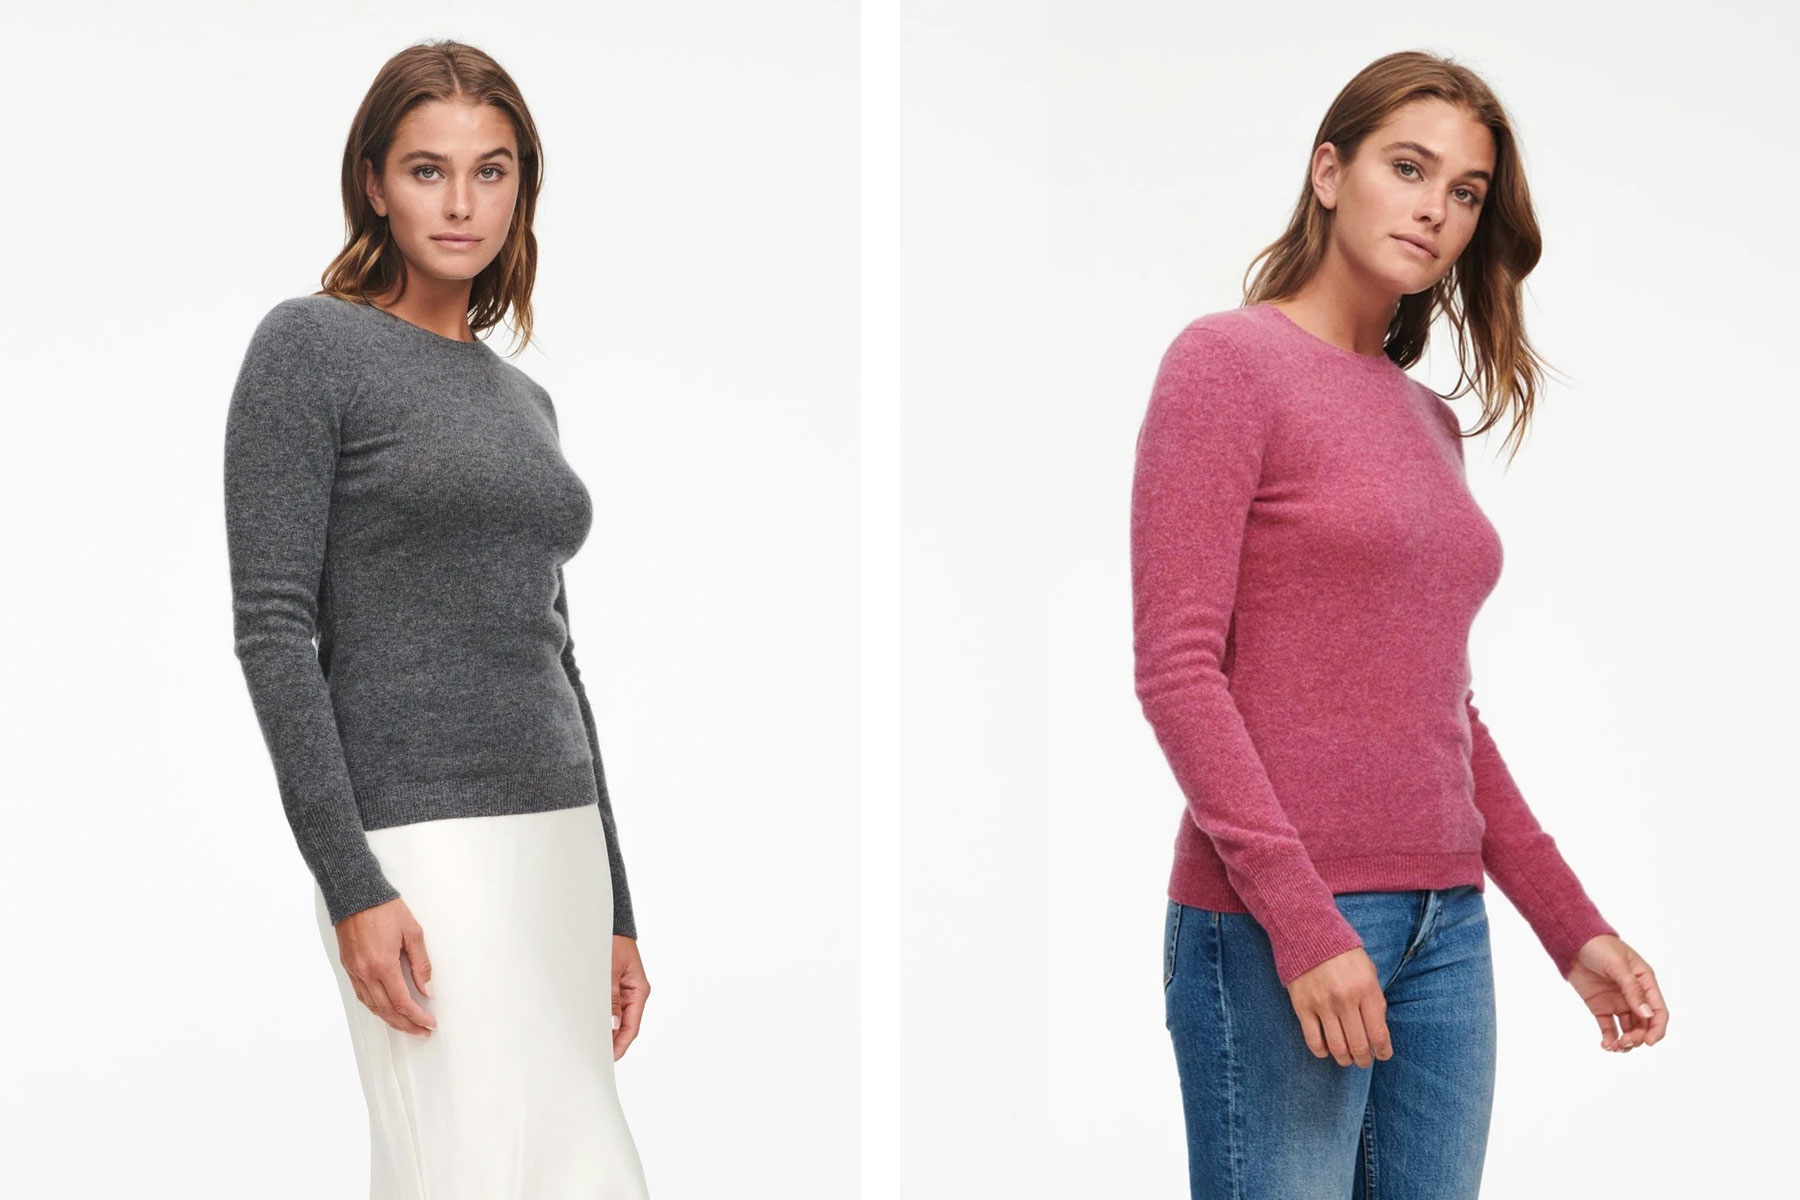 Women wearing grey and cranberry colored cashmere sweaters